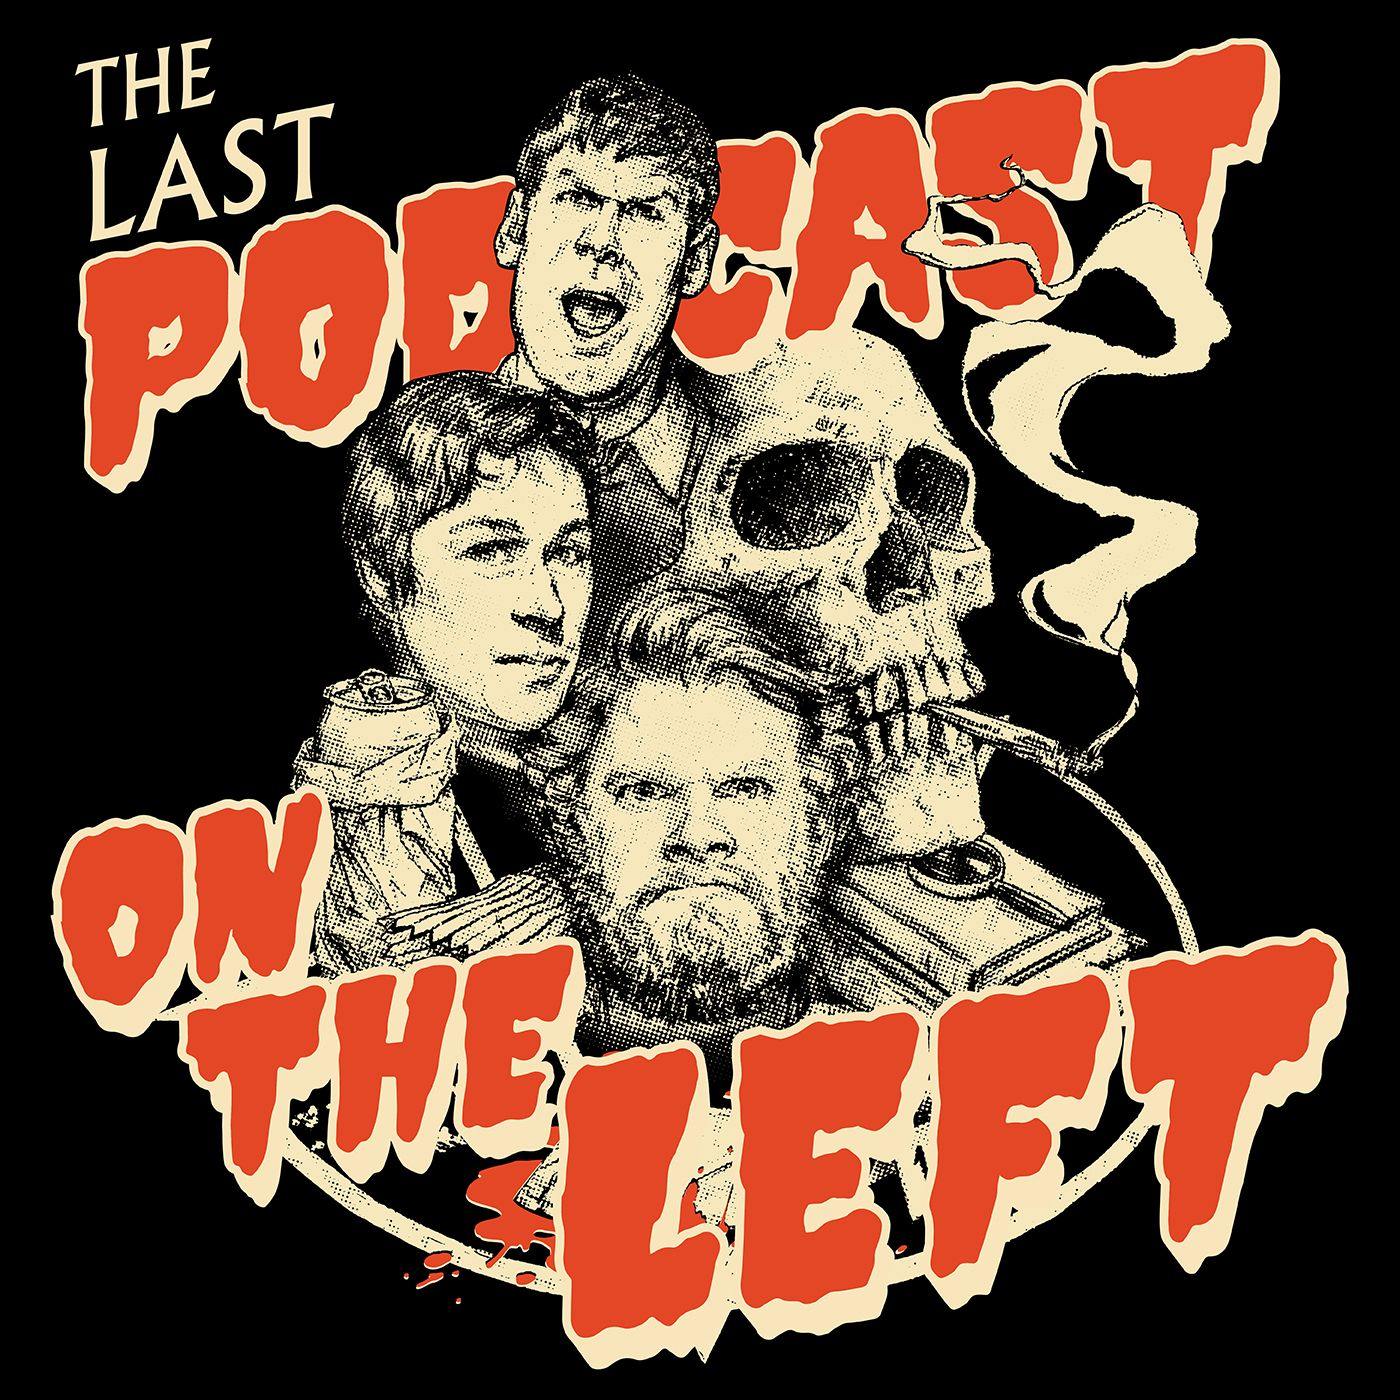 The Last Podcast on the Left podcast logo